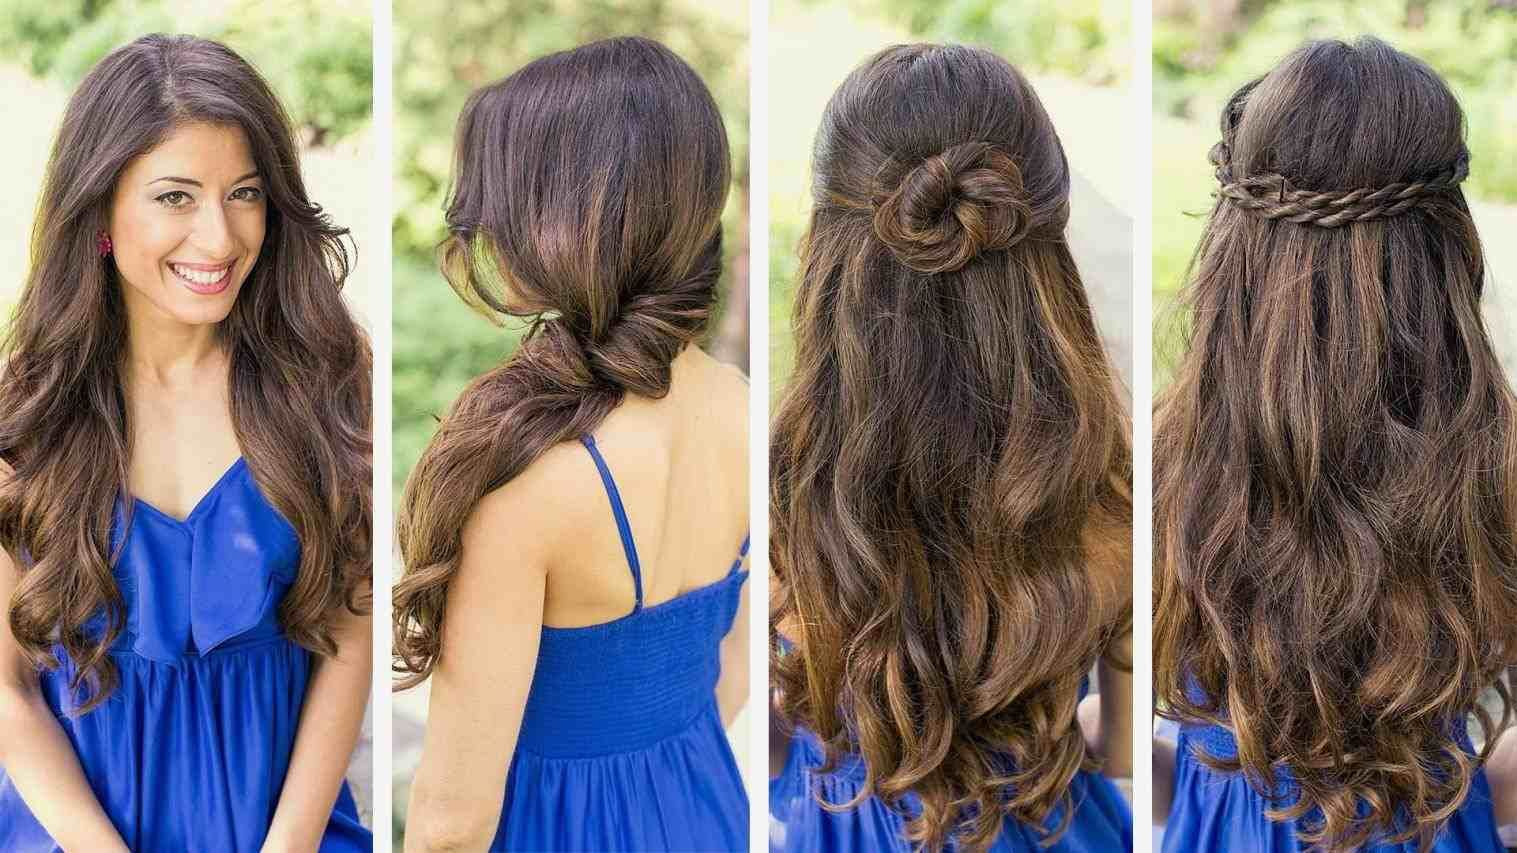 Curly Long Curly Hairstyles Tumblr Hairstyles Long Prom Tumblr Pics With Photos Under Curly Long C Long Hair Indian Girls Cute Hairstyles Long Long Hair Styles